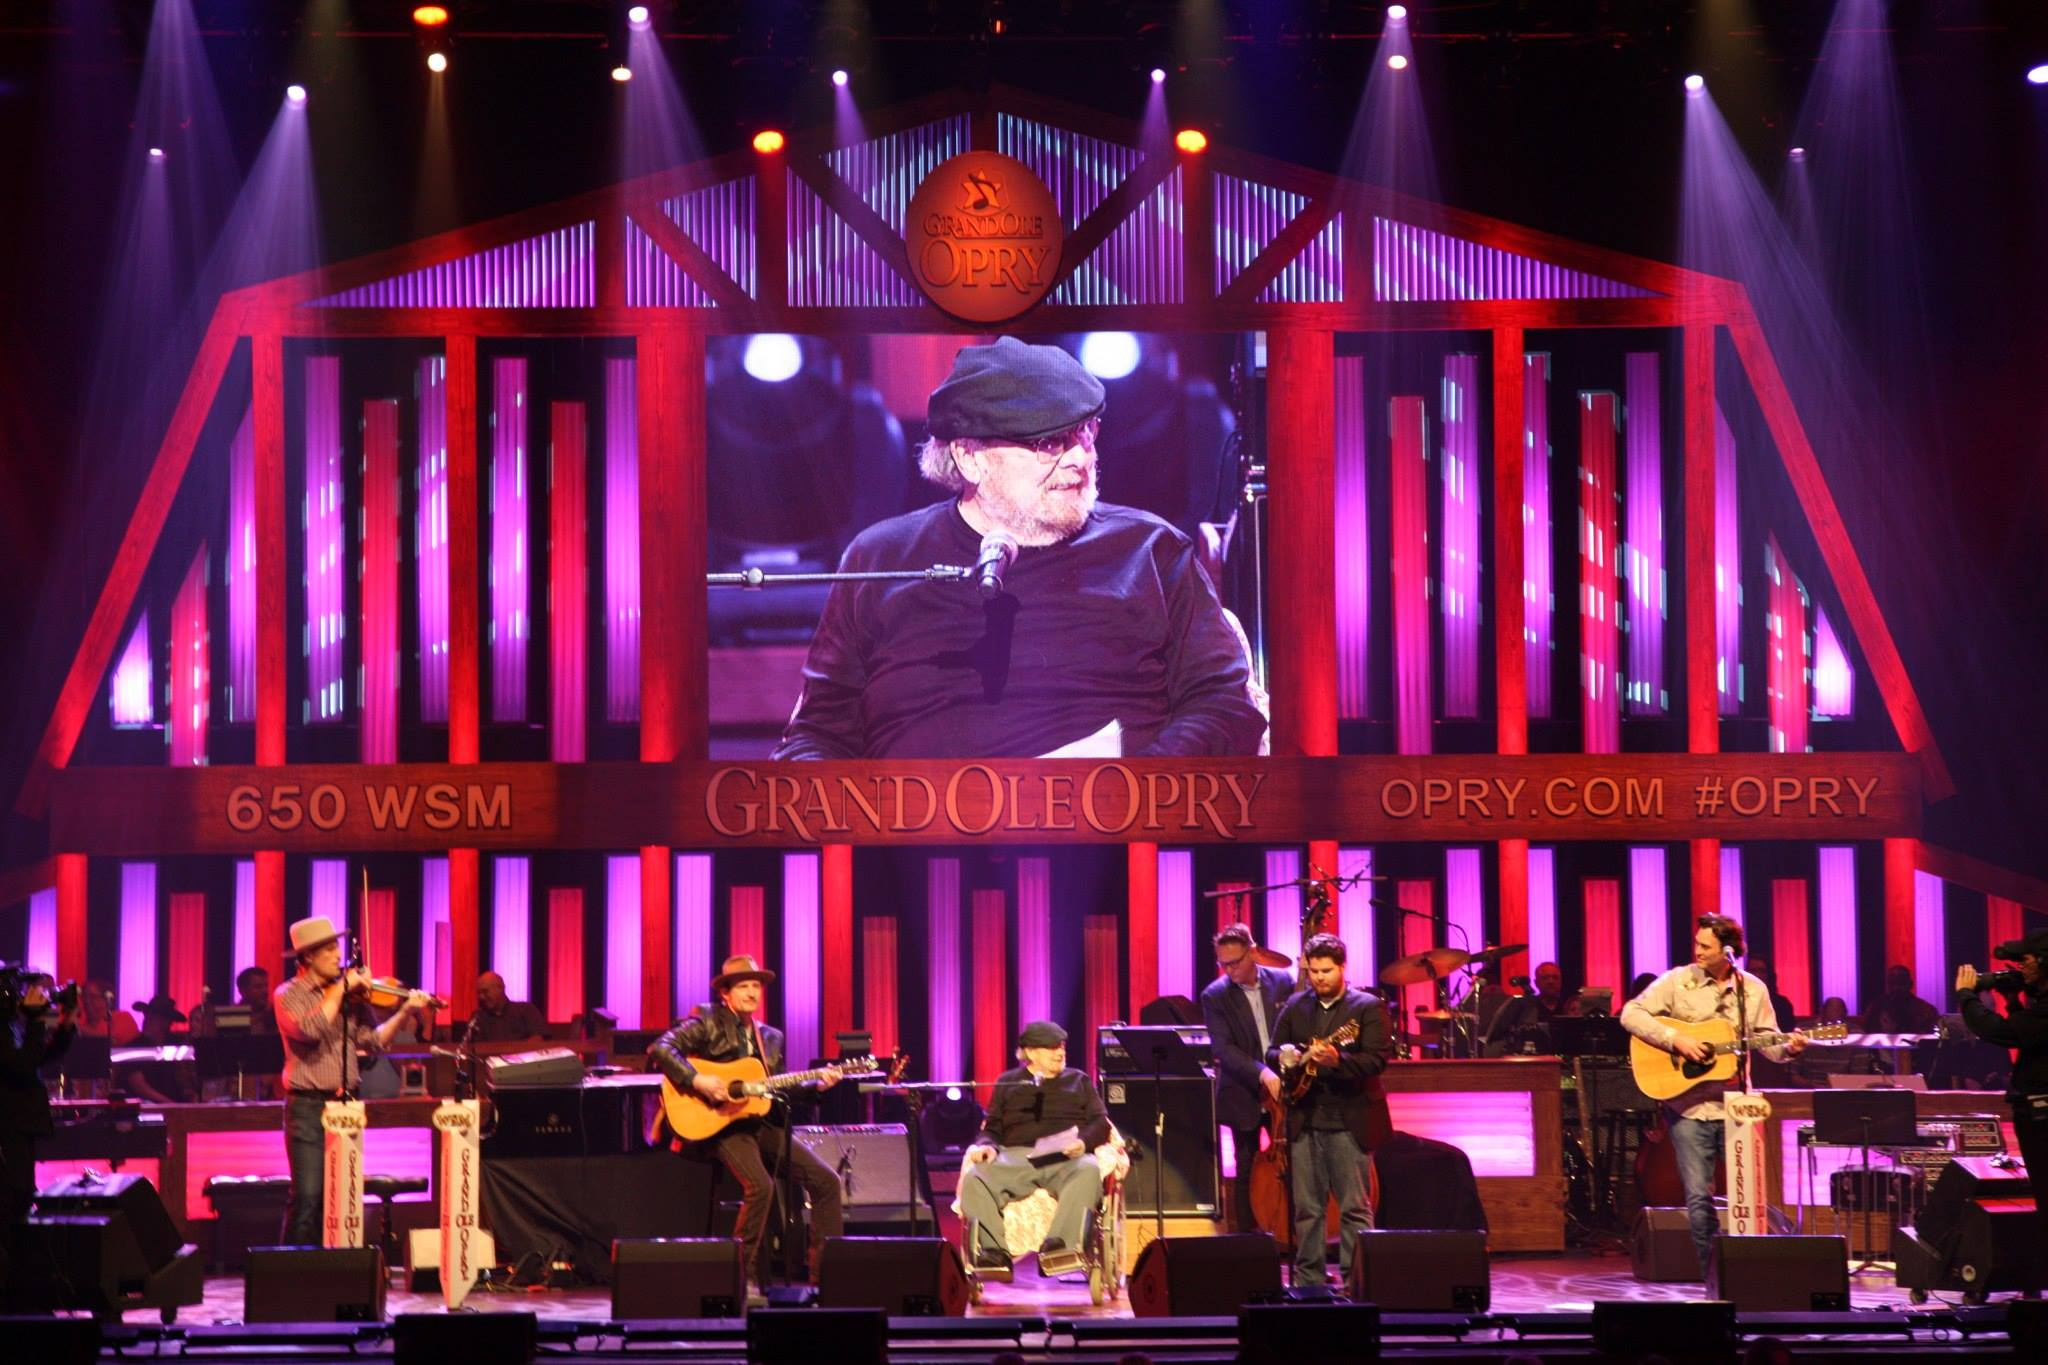 Mac Wiseman @ The Grand Ole Opry 2015